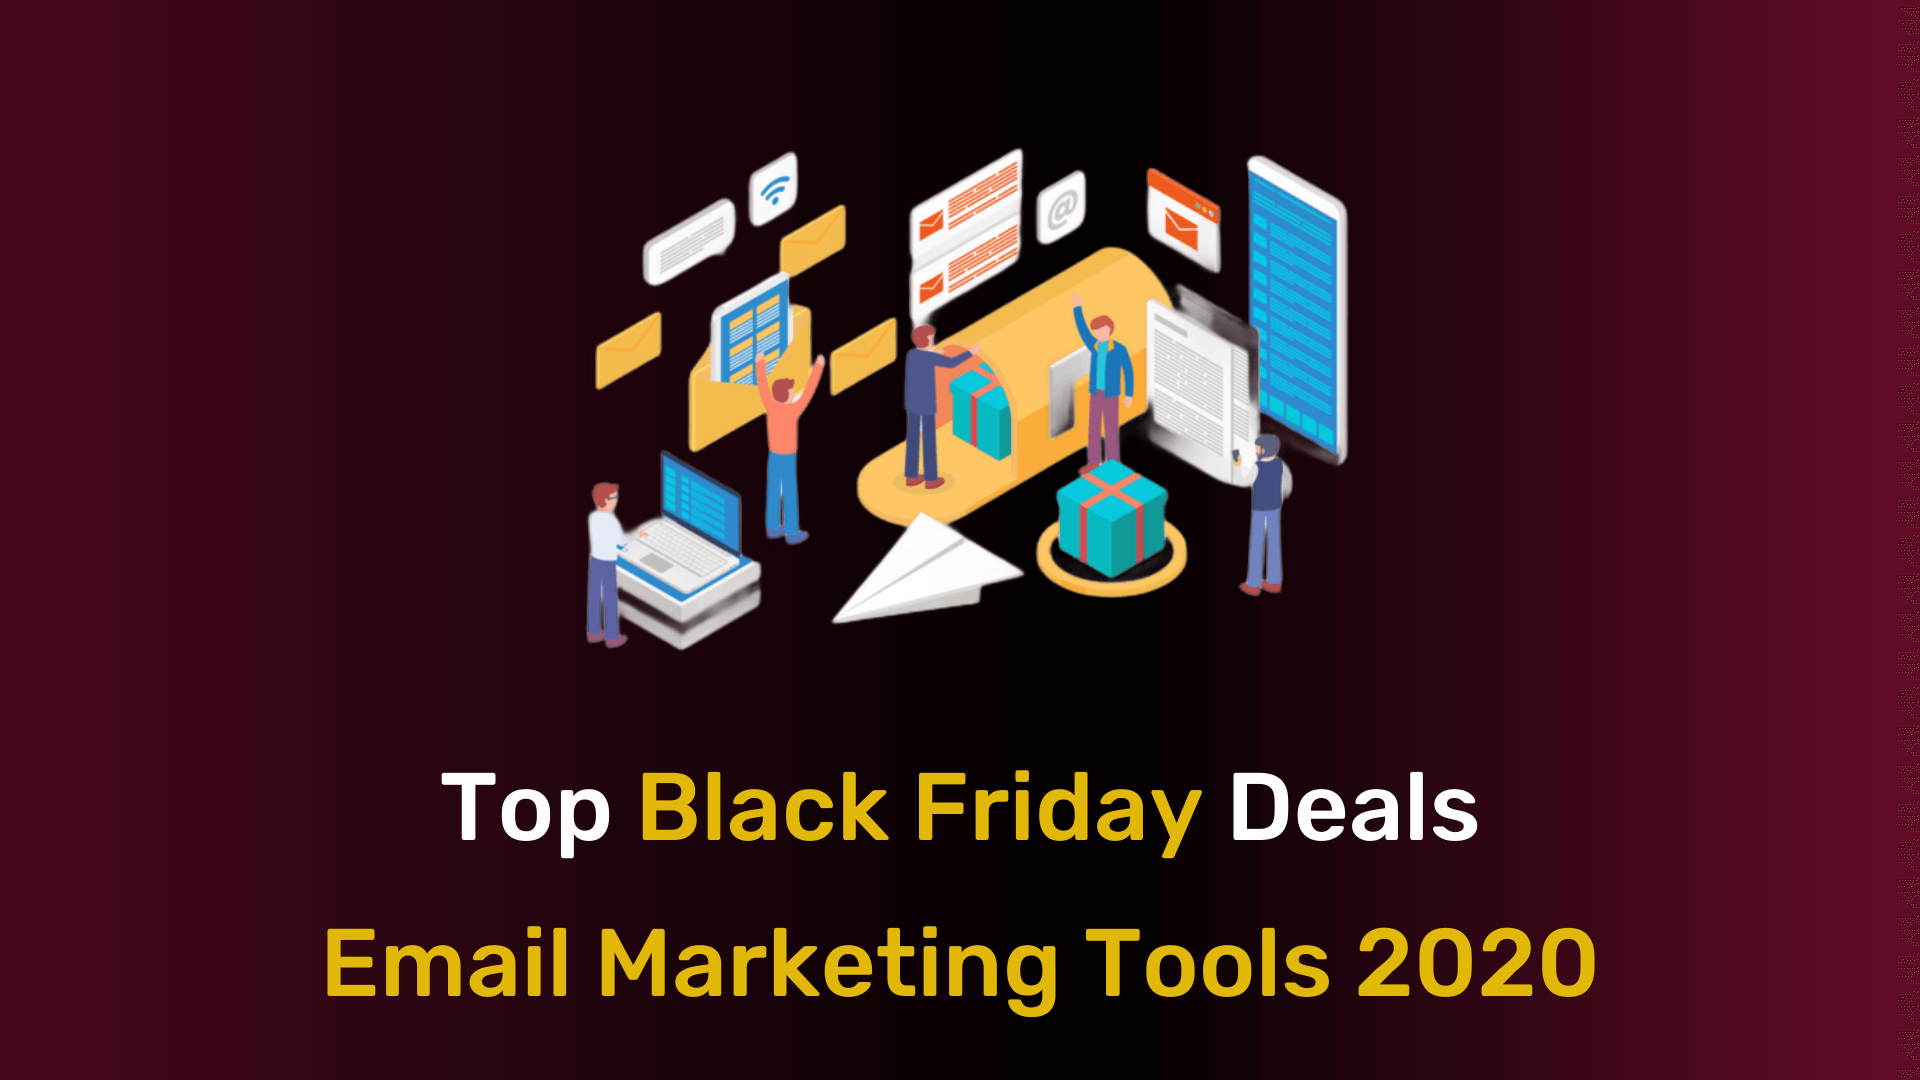 Black-friday-email-marketing-tools-Deals